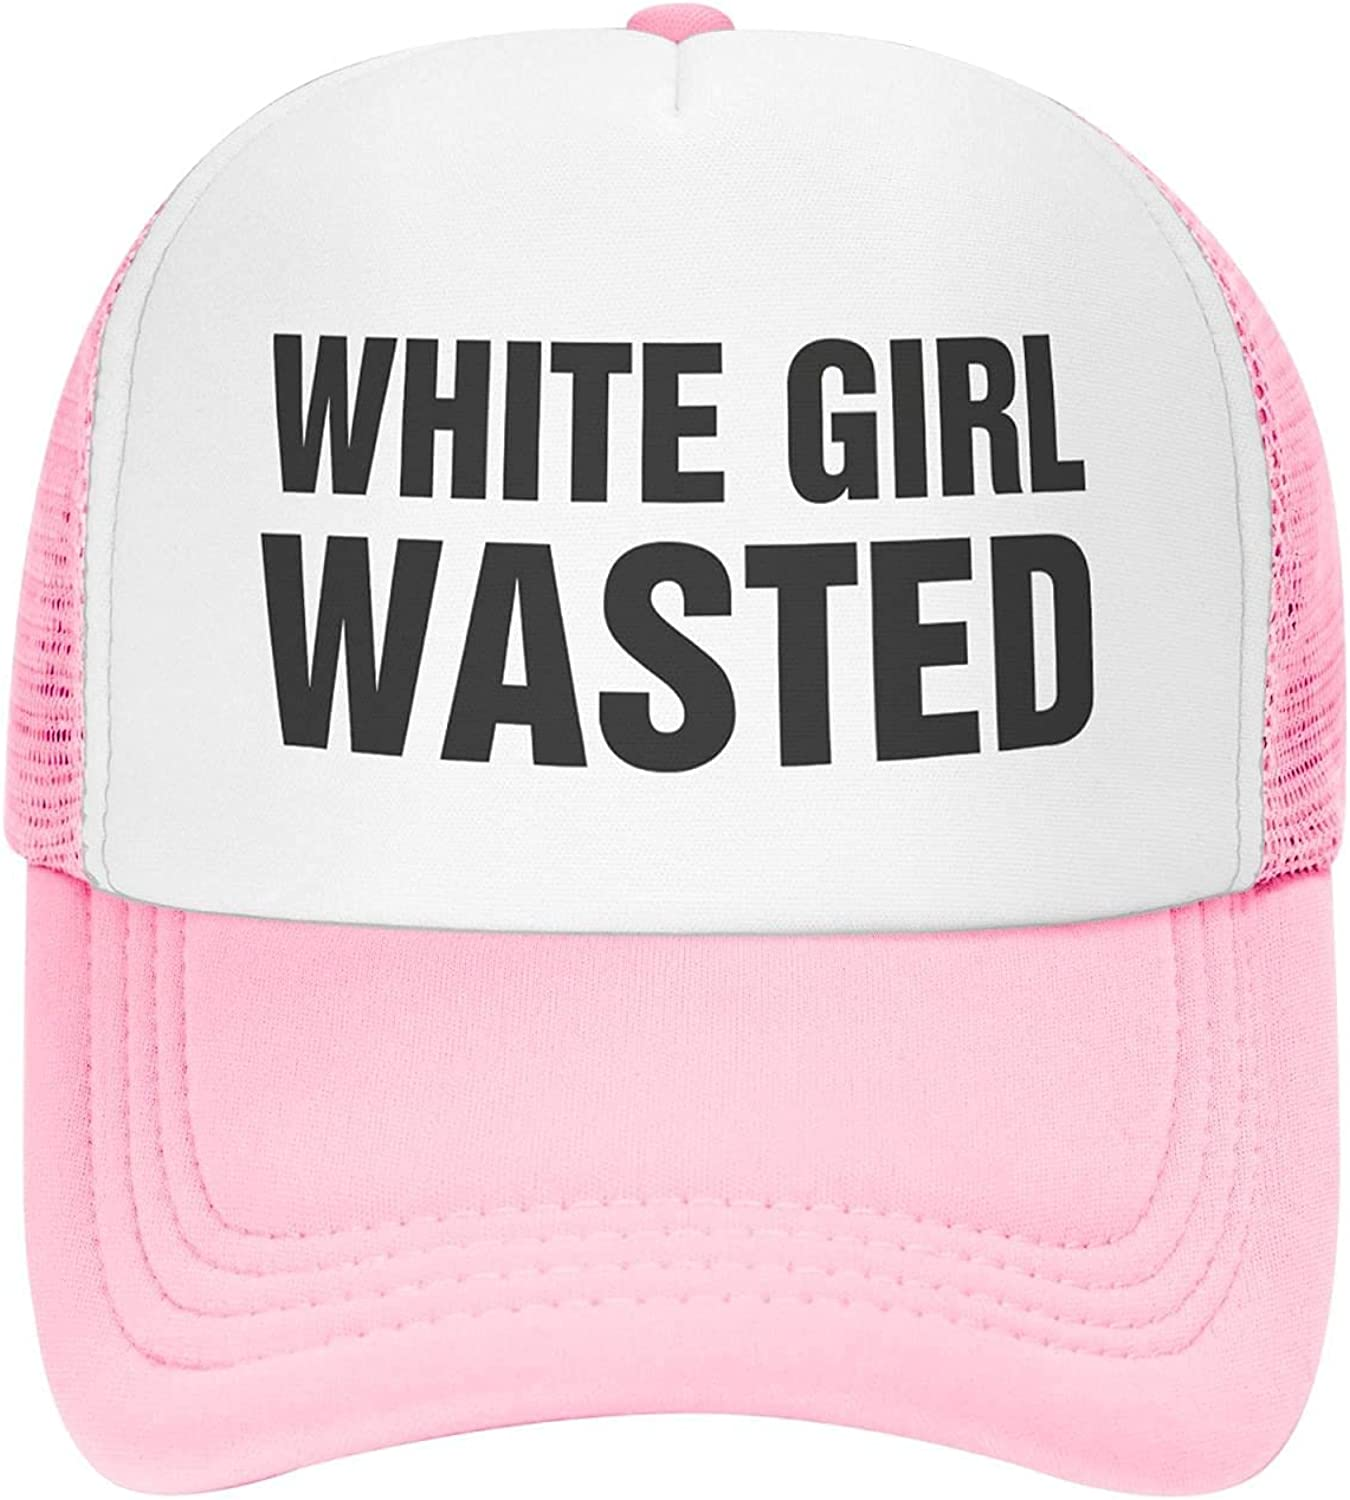 Hoodie My Heart White Girl Wasted Hats for Women Funny Retro Style Trucker Mesh Baseball Caps